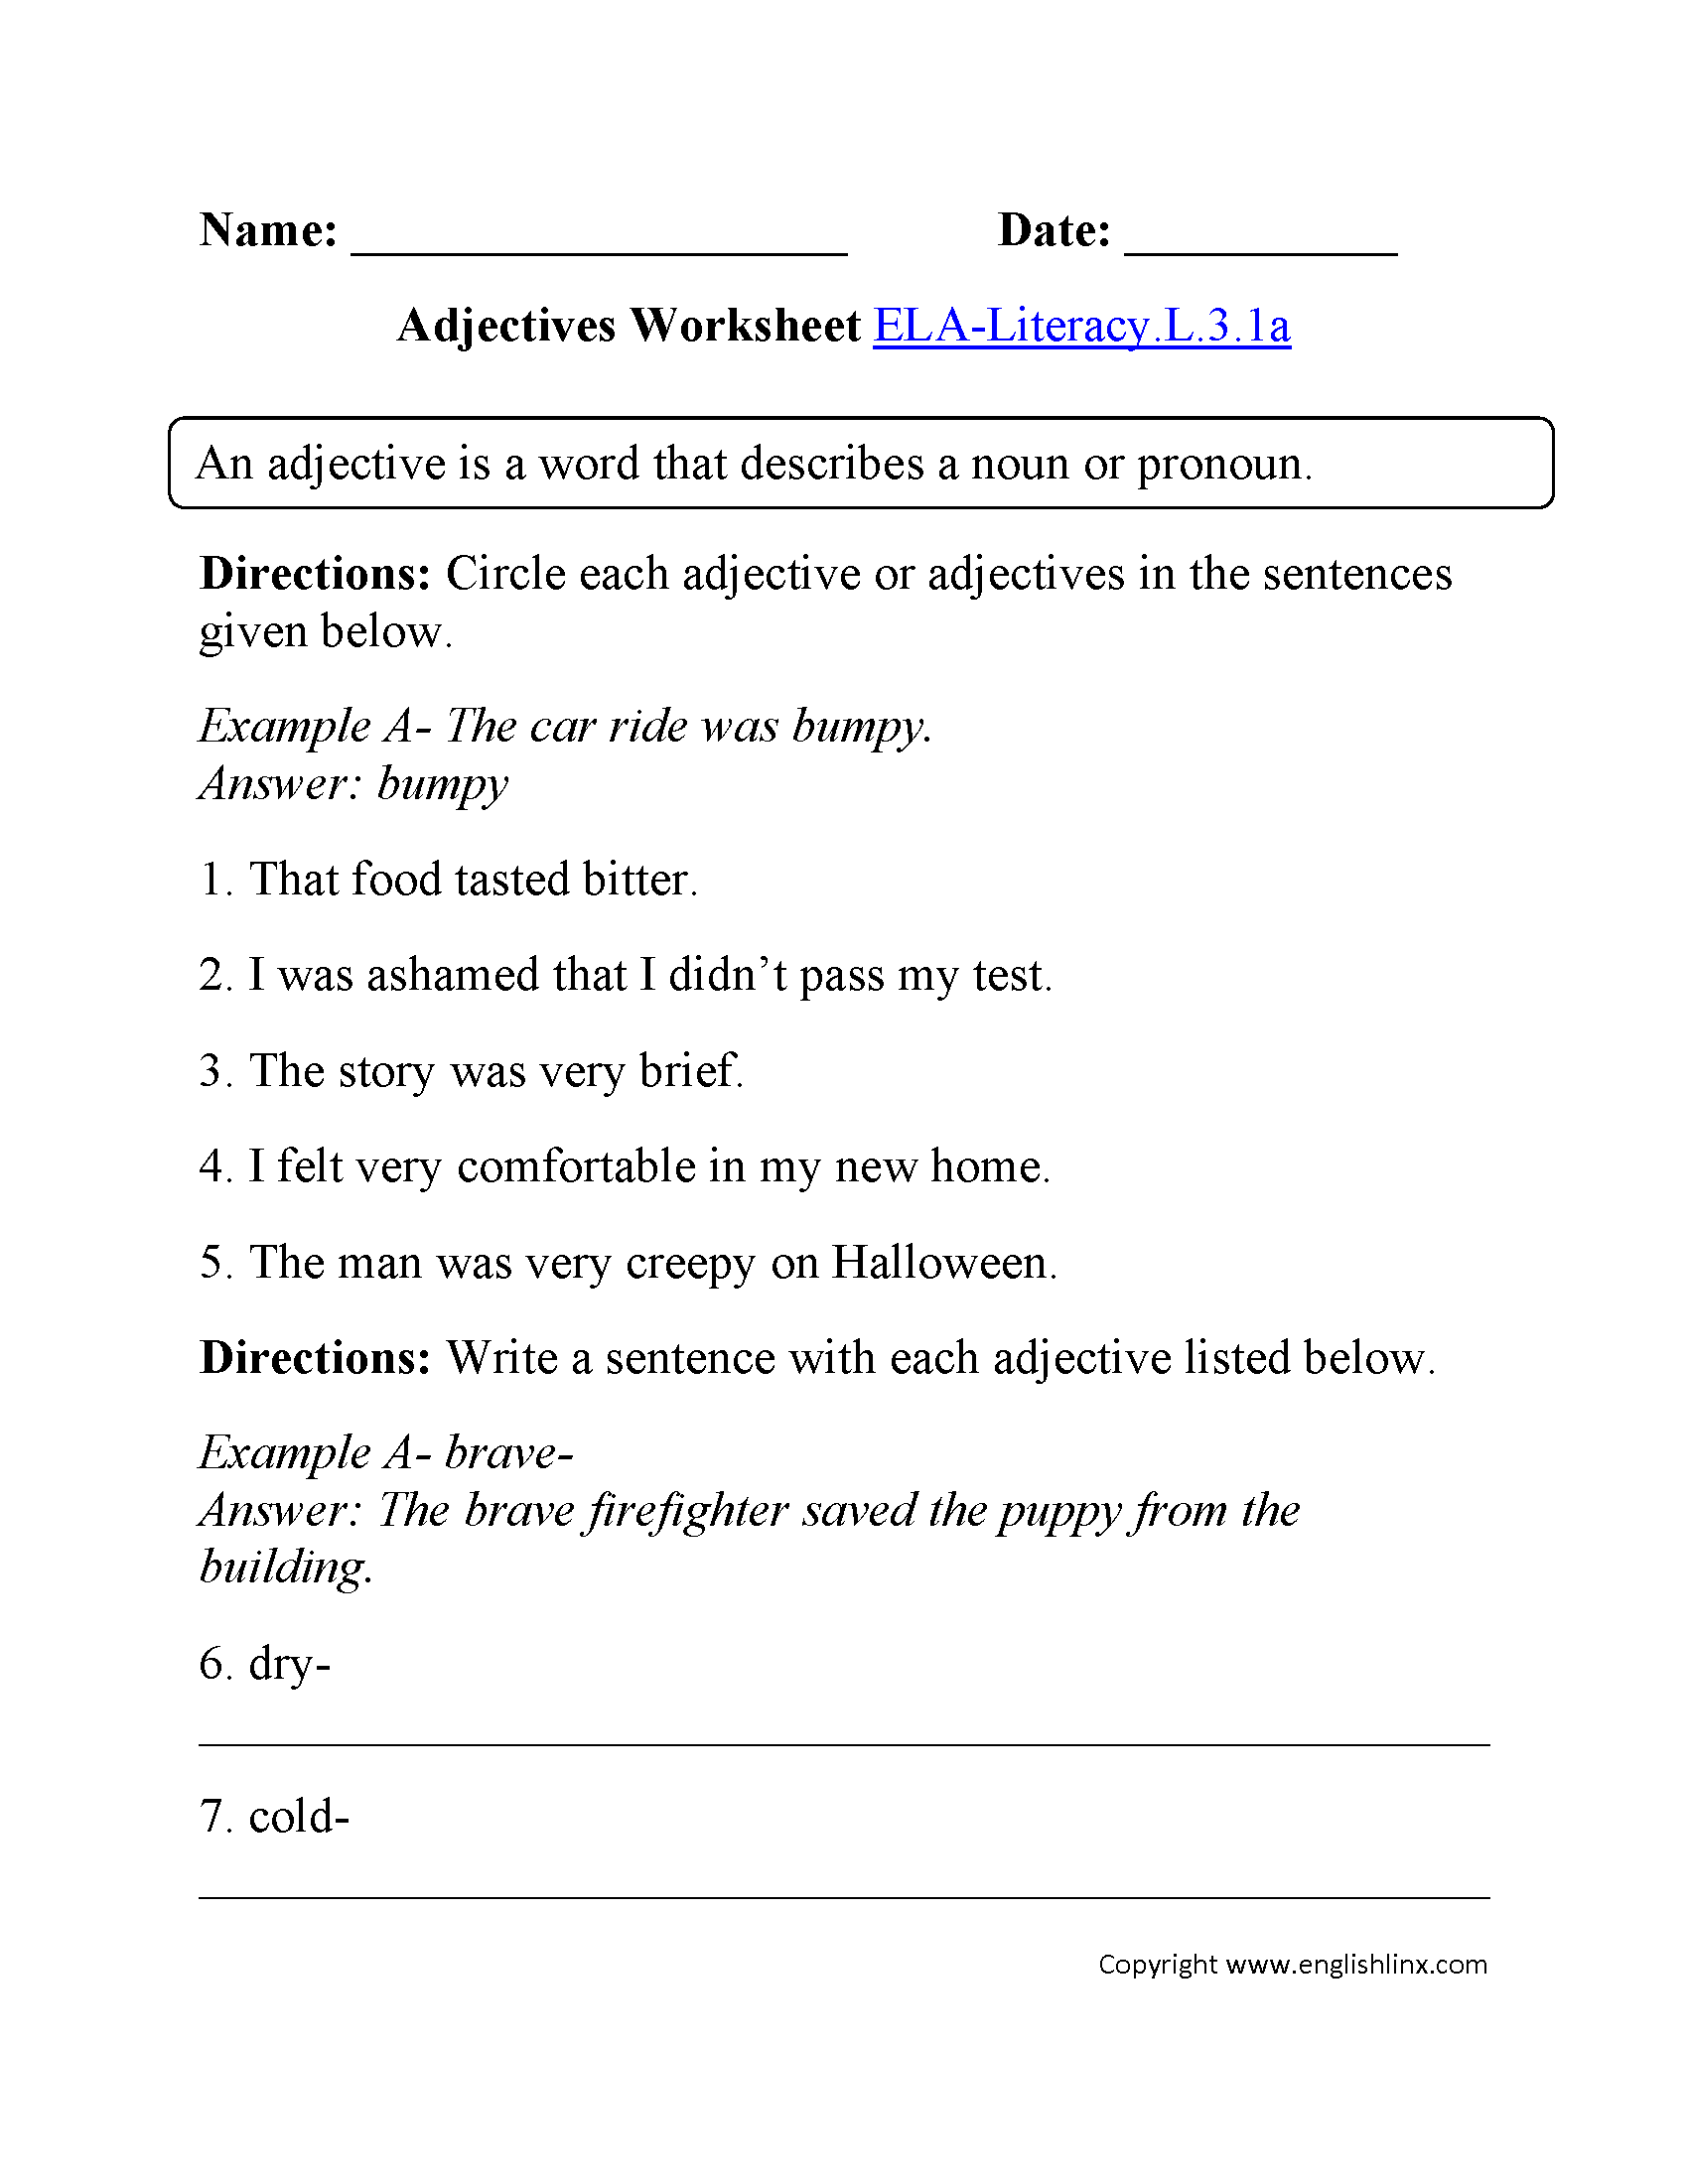 Adjectives Worksheet 2 Ela Literacy L 3 1a Language